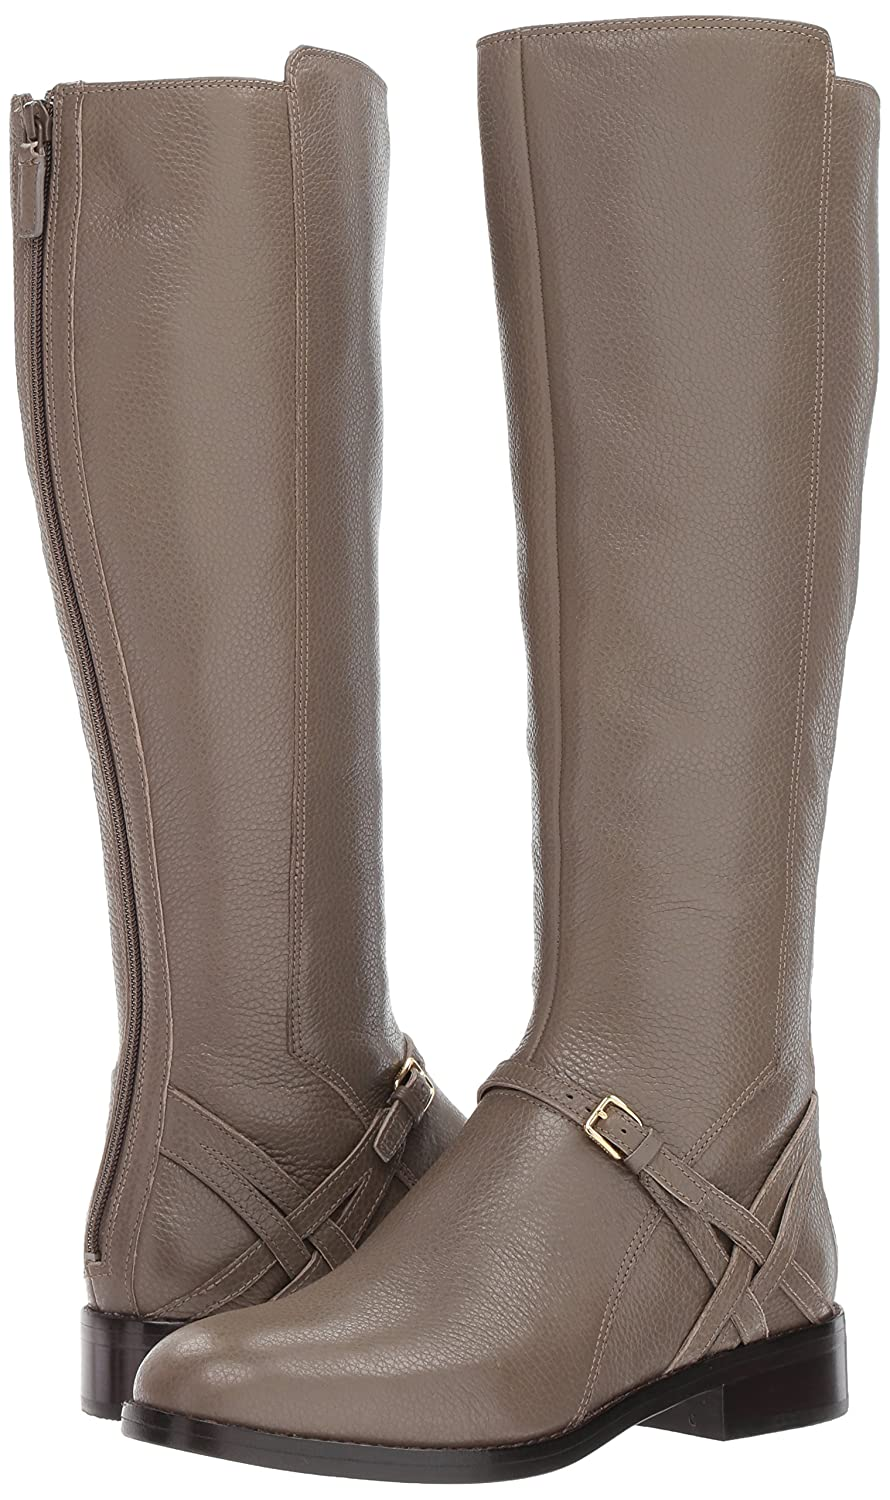 Cole Haan Women's Pearlie Boot B071KGNFB8 9.5 B(M) US|Morel Leather